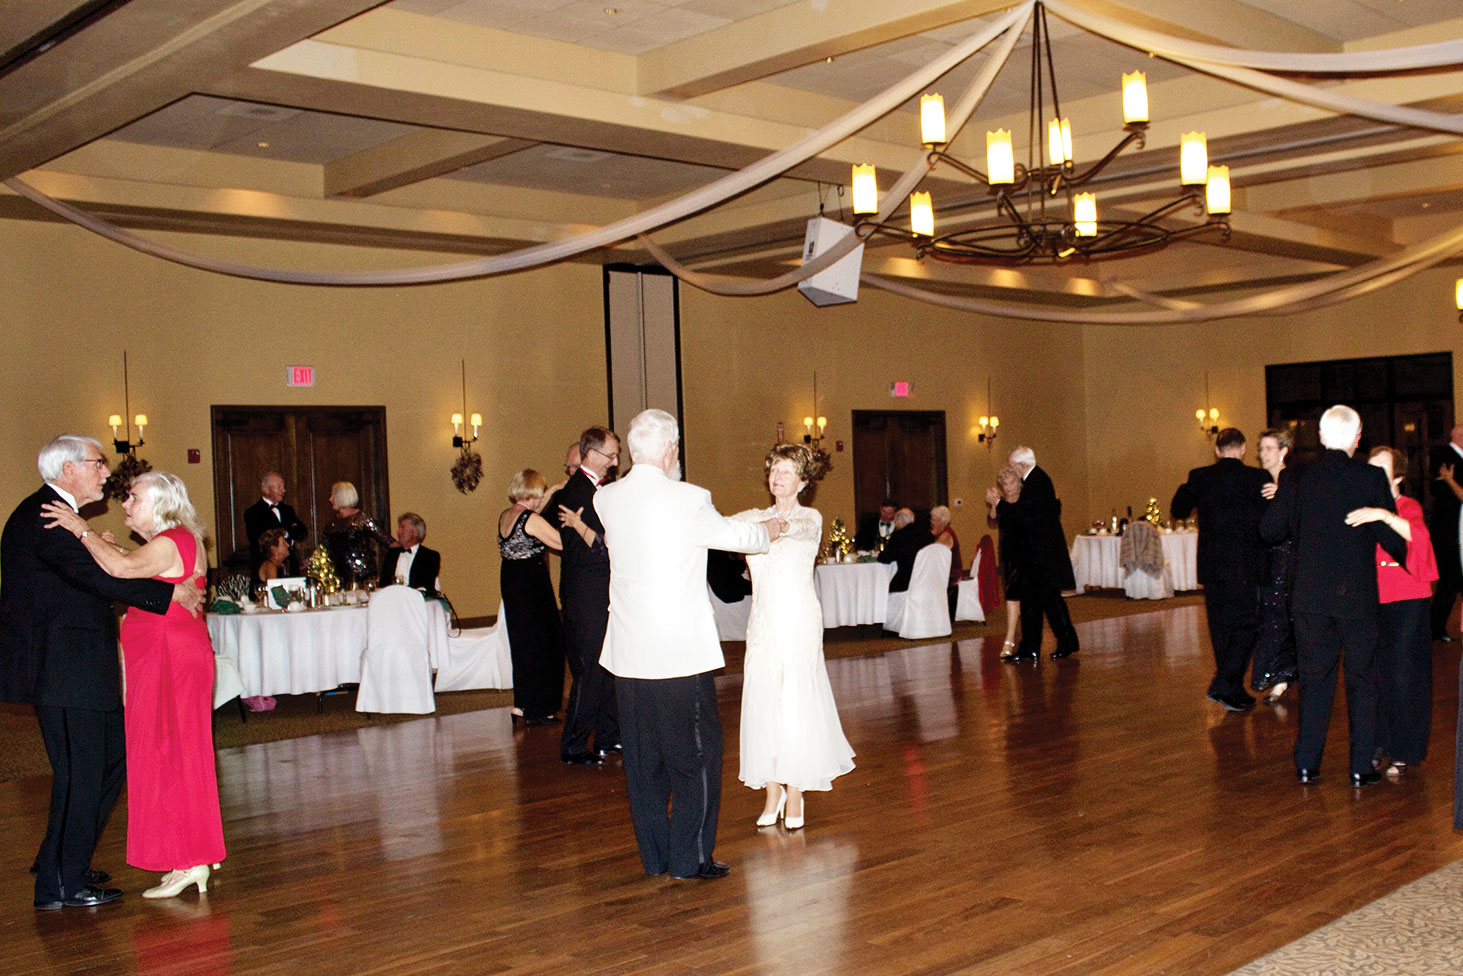 Ballroom Dance Club members George and Ona Gibson and Jack and Wendy Berry enjoy dancing at the December dinner.